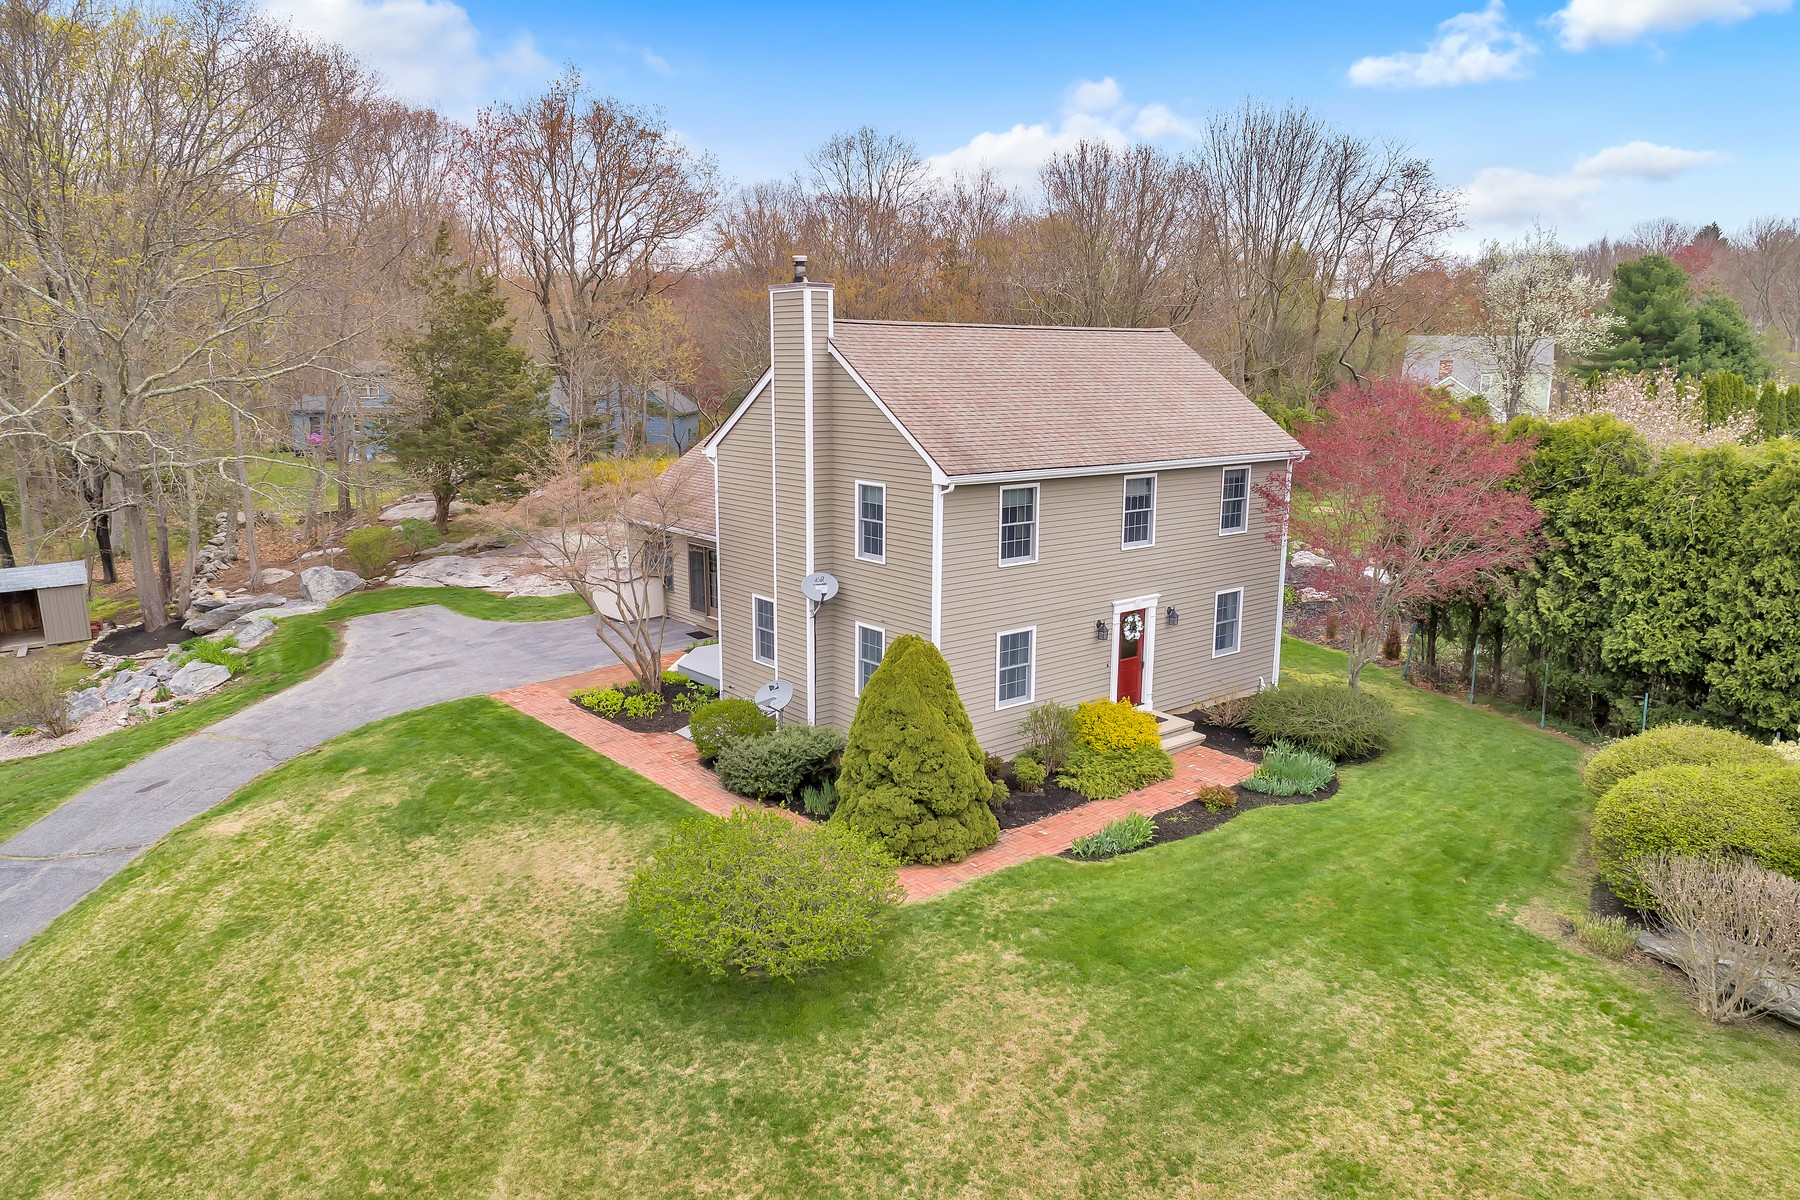 Single Family Homes for Active at Stunning Open-Concept Colonial 9 Mayfair Drive Waterford, Connecticut 06385 United States